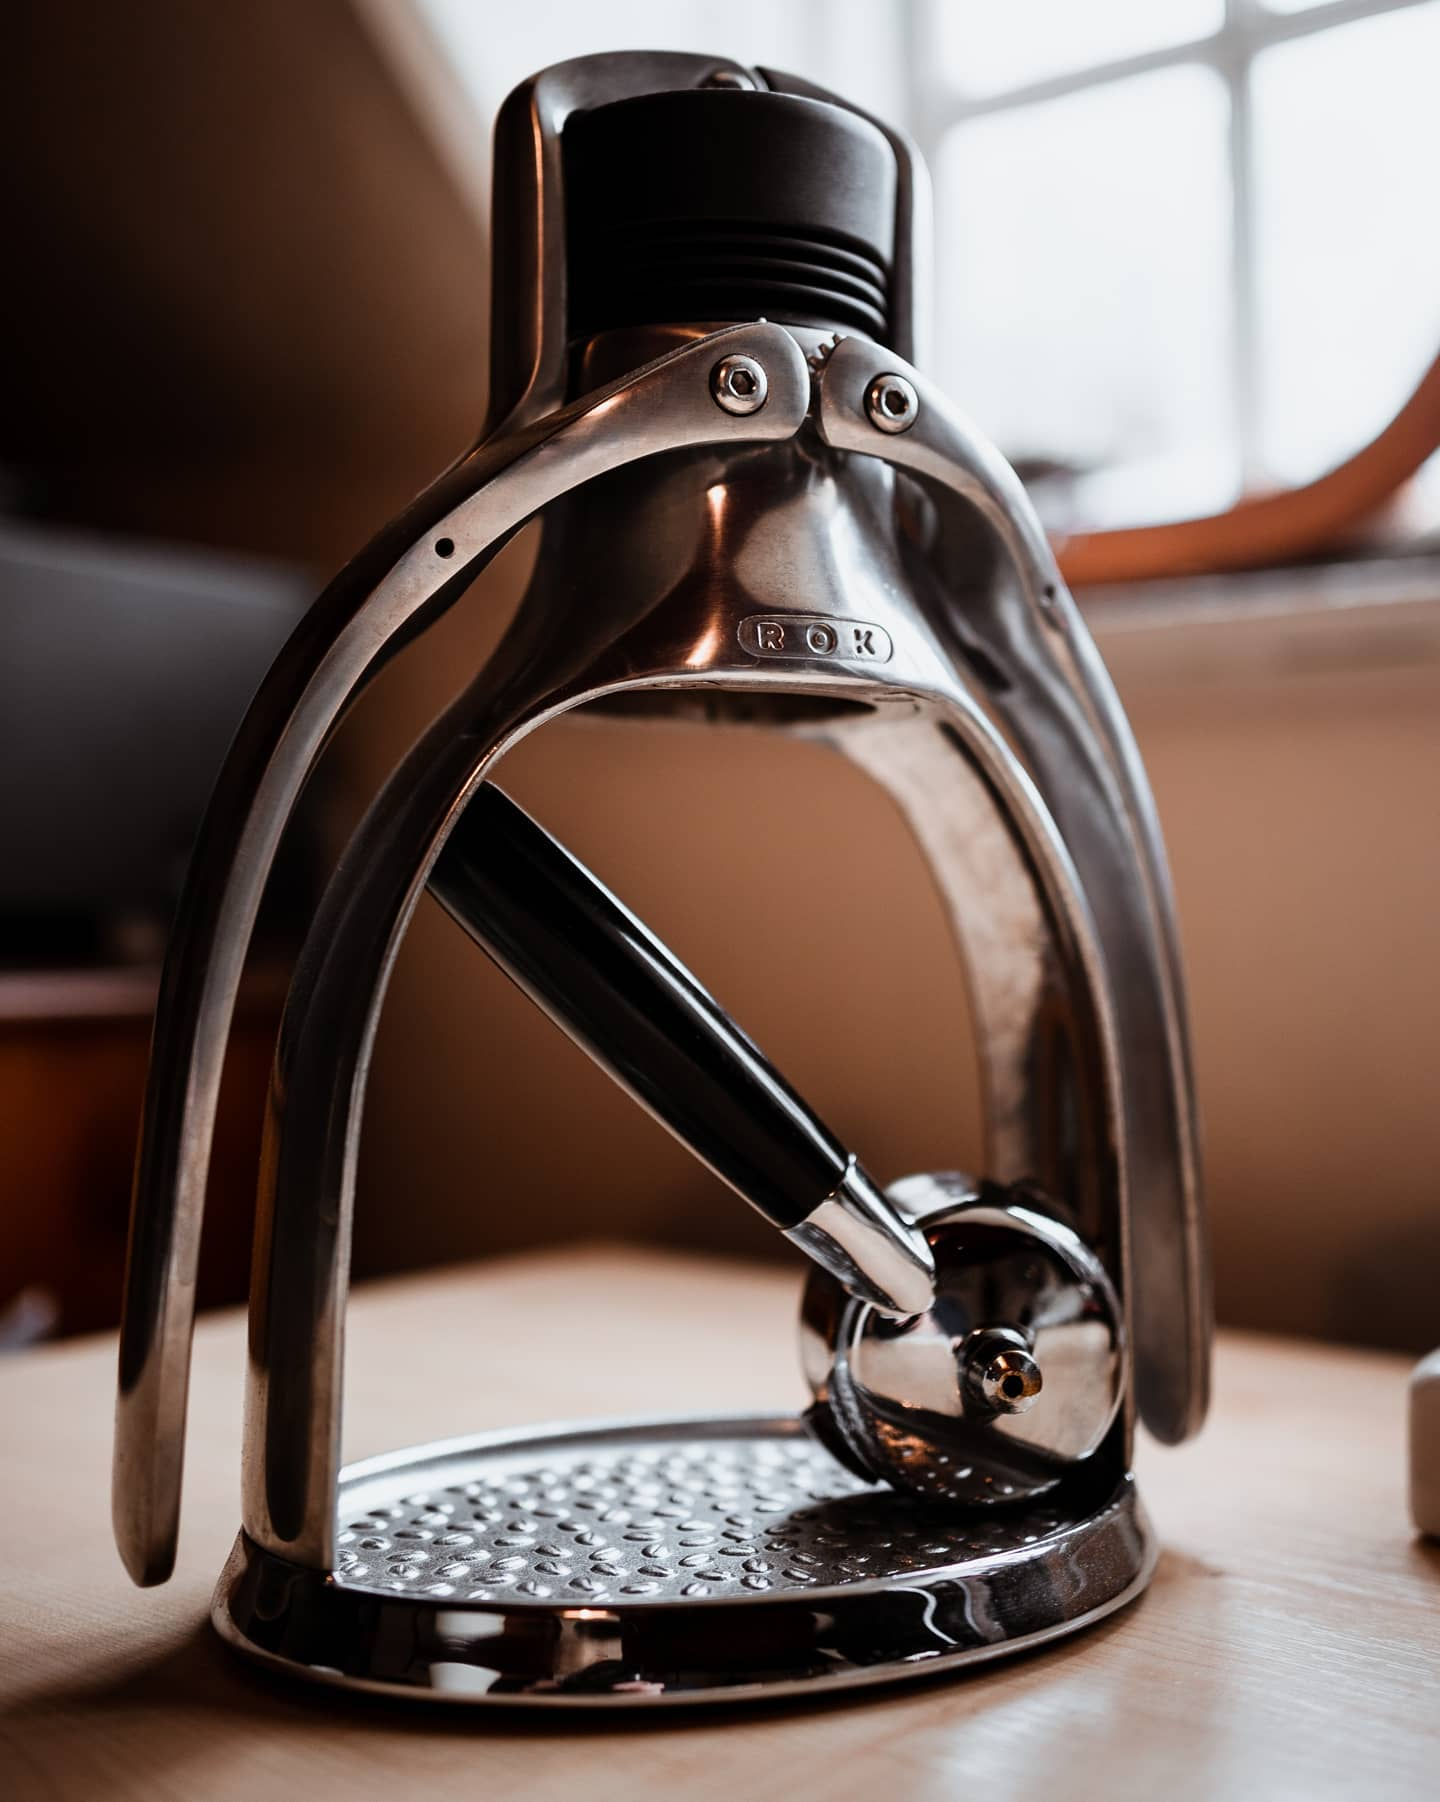 The EspressoGC, perfectly at home whereever you keep it!   #rokcoffee #coffeemachine #coffee_machine  #machinecoffee #coffeemaker #coffeeprocess #coffeeheaven #coffeedesign #espressomachine #coffeeathome #homebrew #makecoffeebetter #slayerespresso  #specialtycoffee #artisancoffee #coffeebrewing #brewathomecoffee #manualbrewonly #slowbrewing #dripcoffee